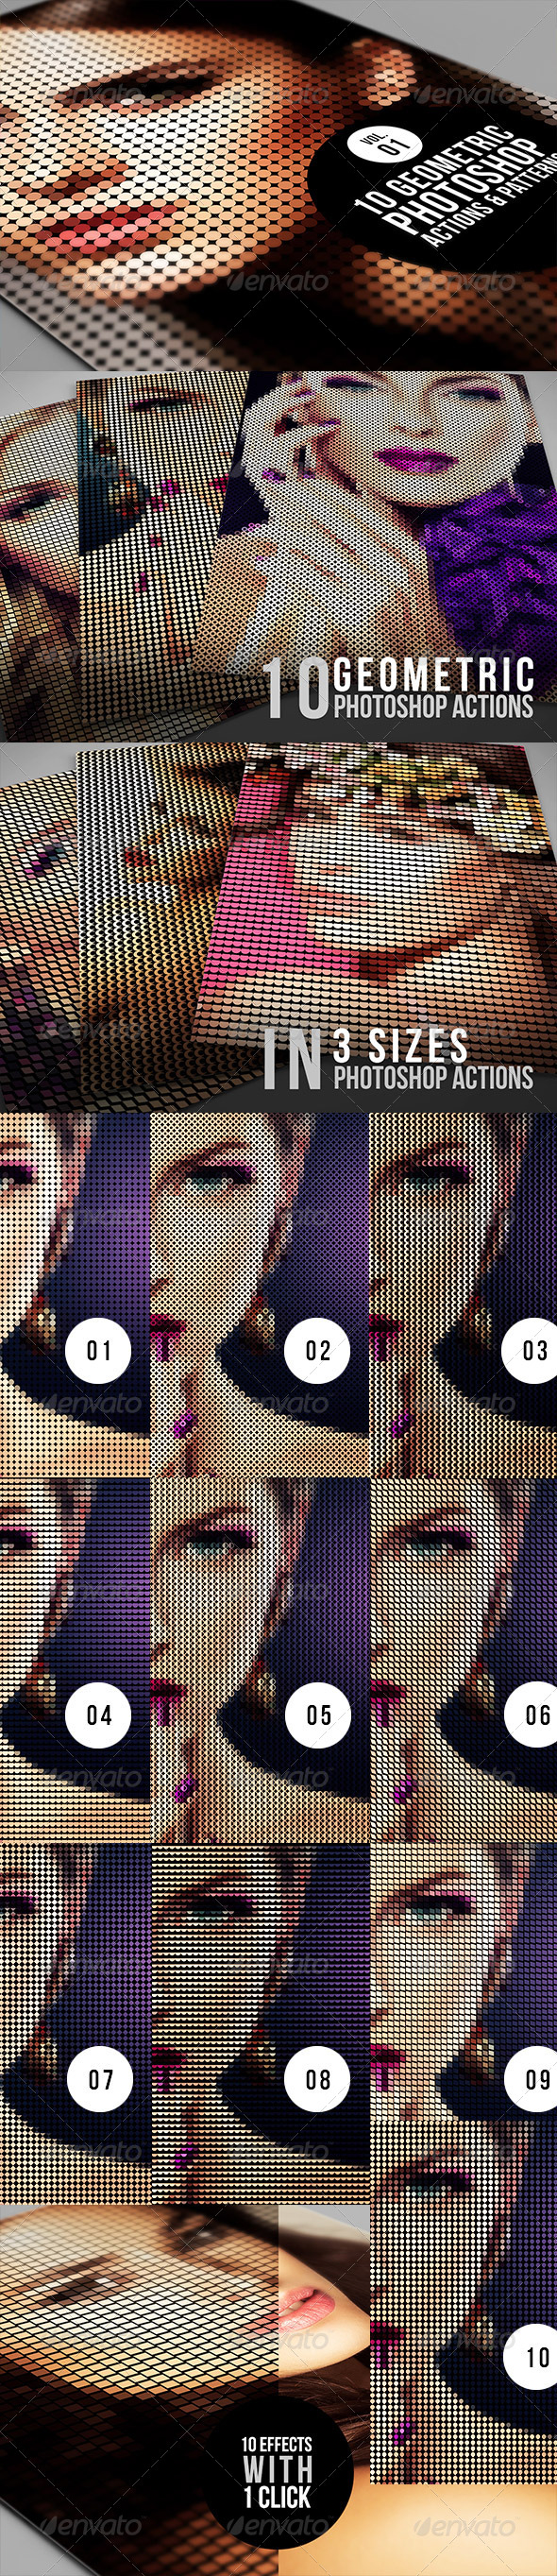 GraphicRiver 10 Geometric Photoshop Actions 01 6249126